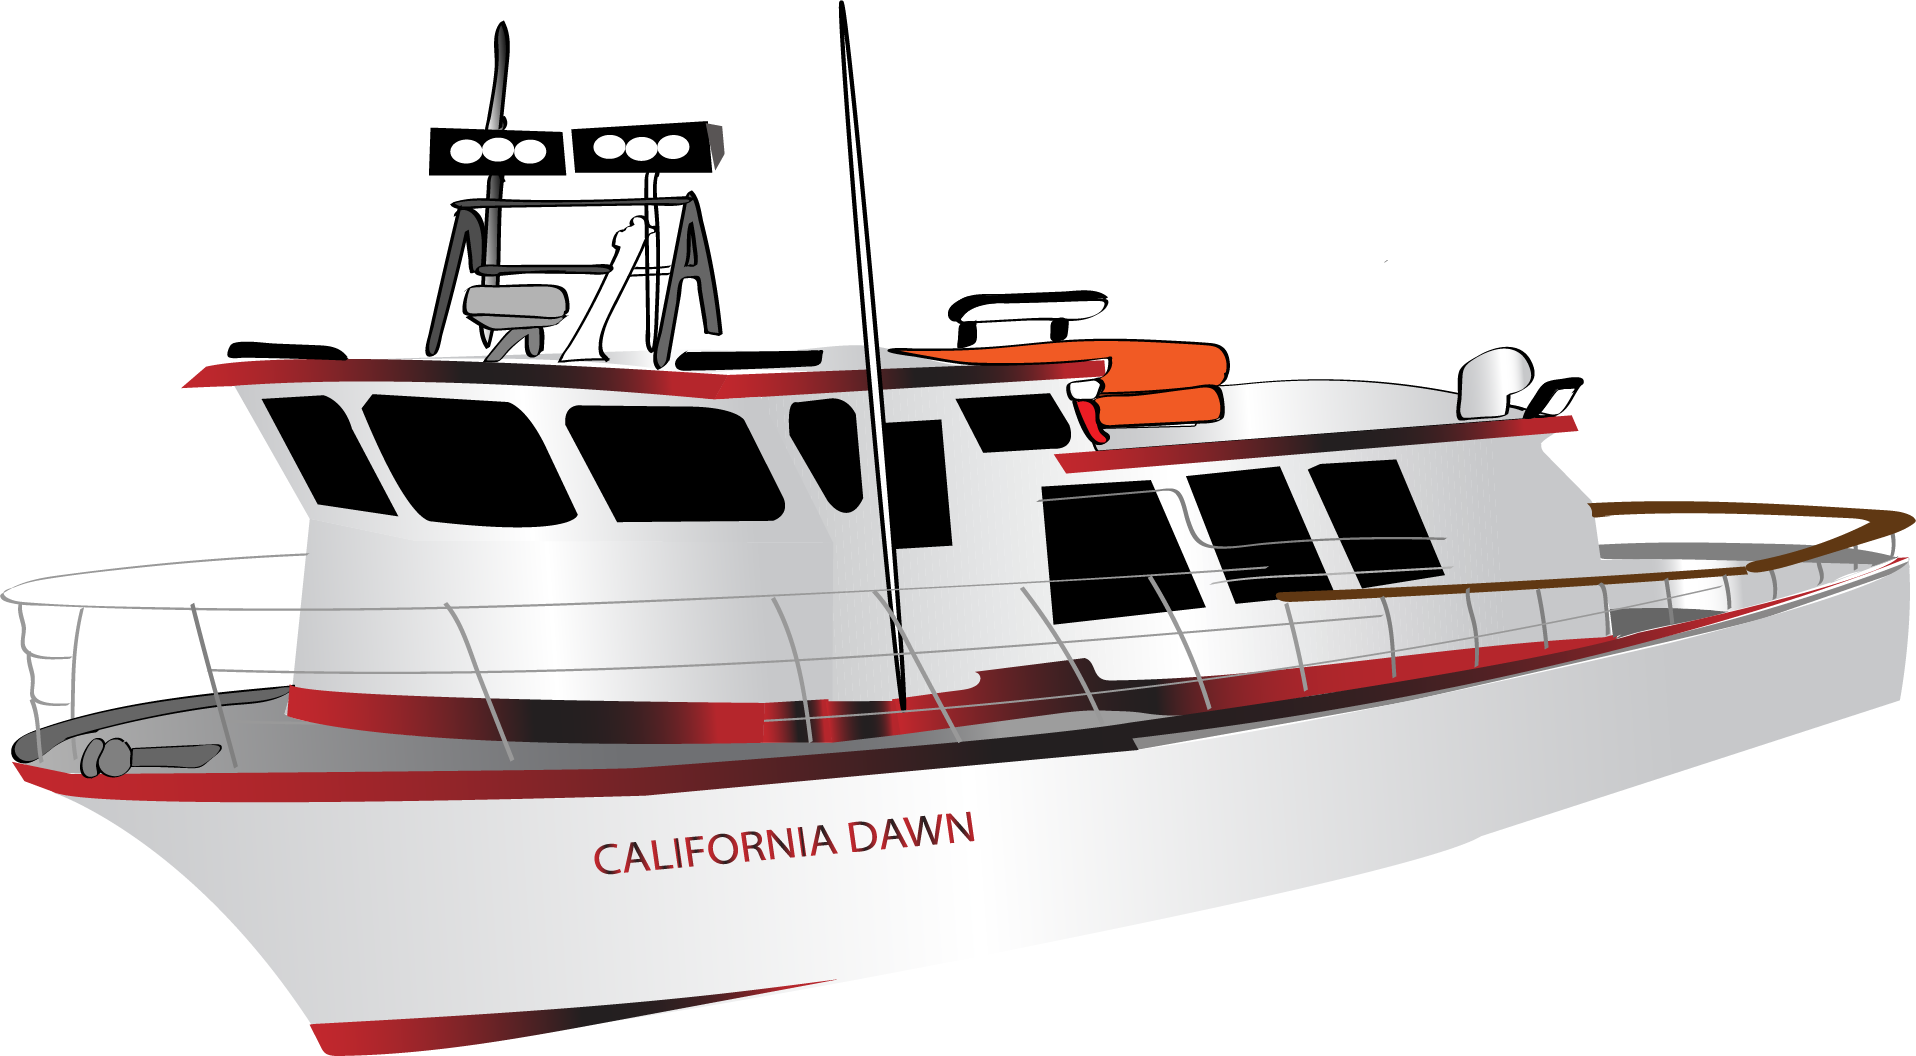 Home | California Dawn Sportfishing